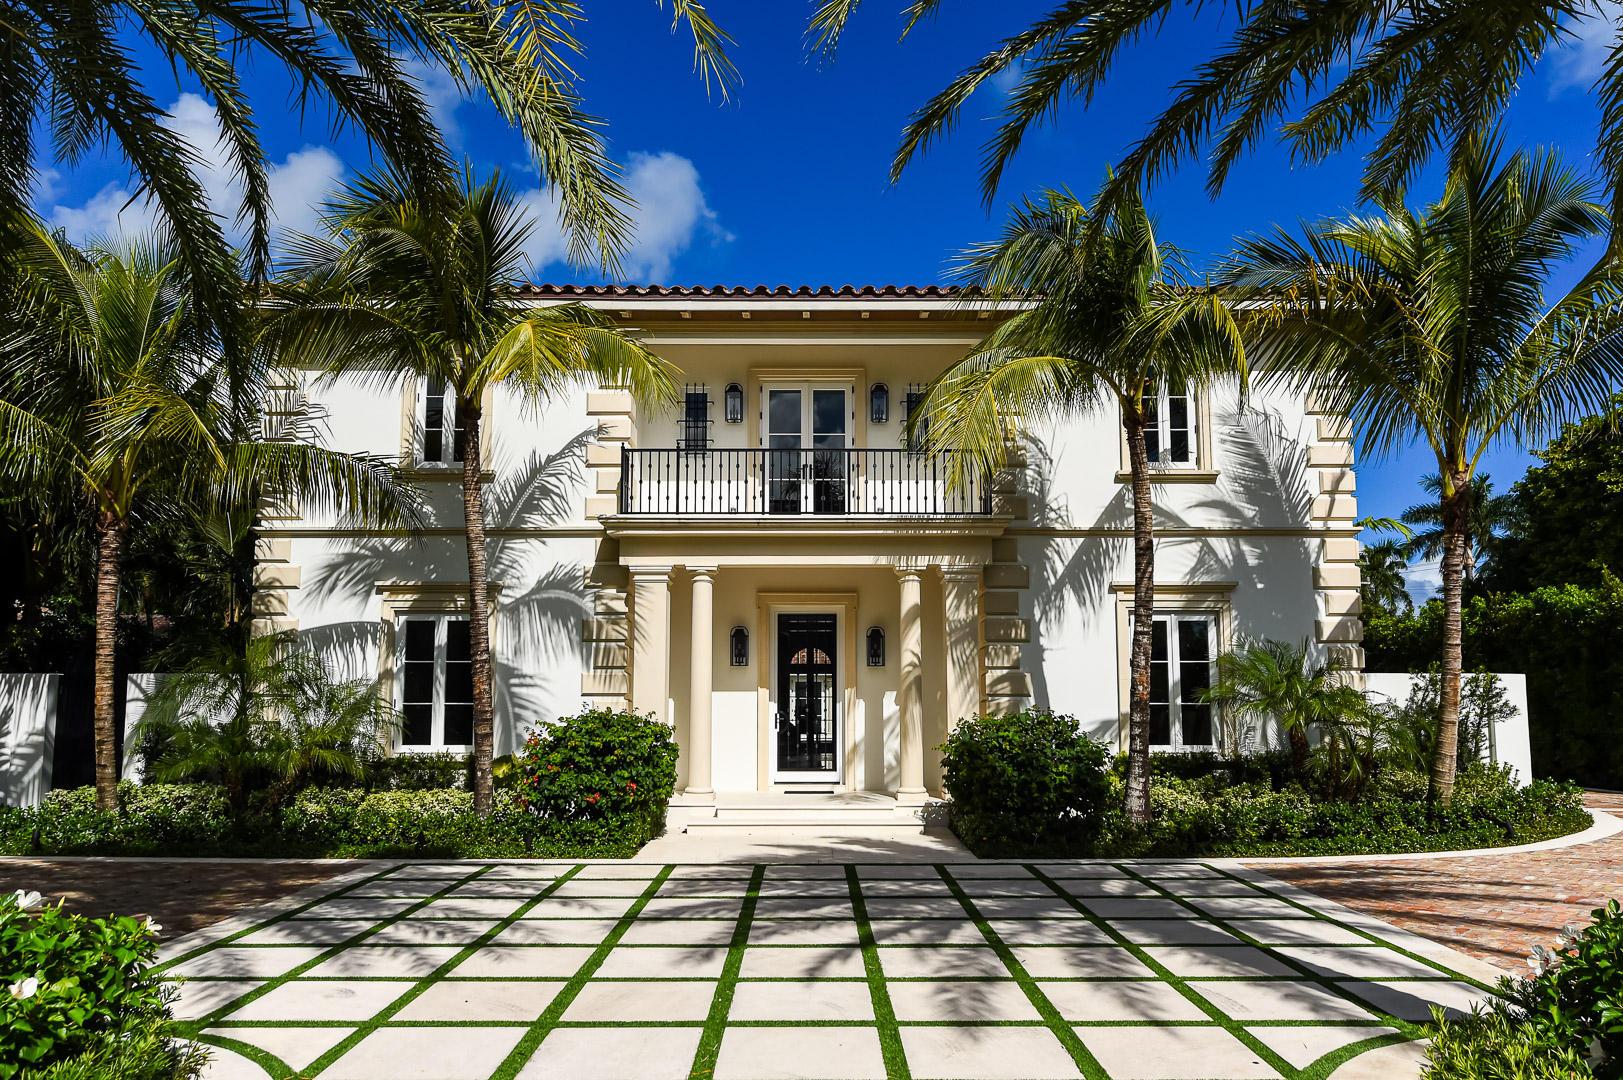 New Home for sale at 201 Dunbar Road in Palm Beach